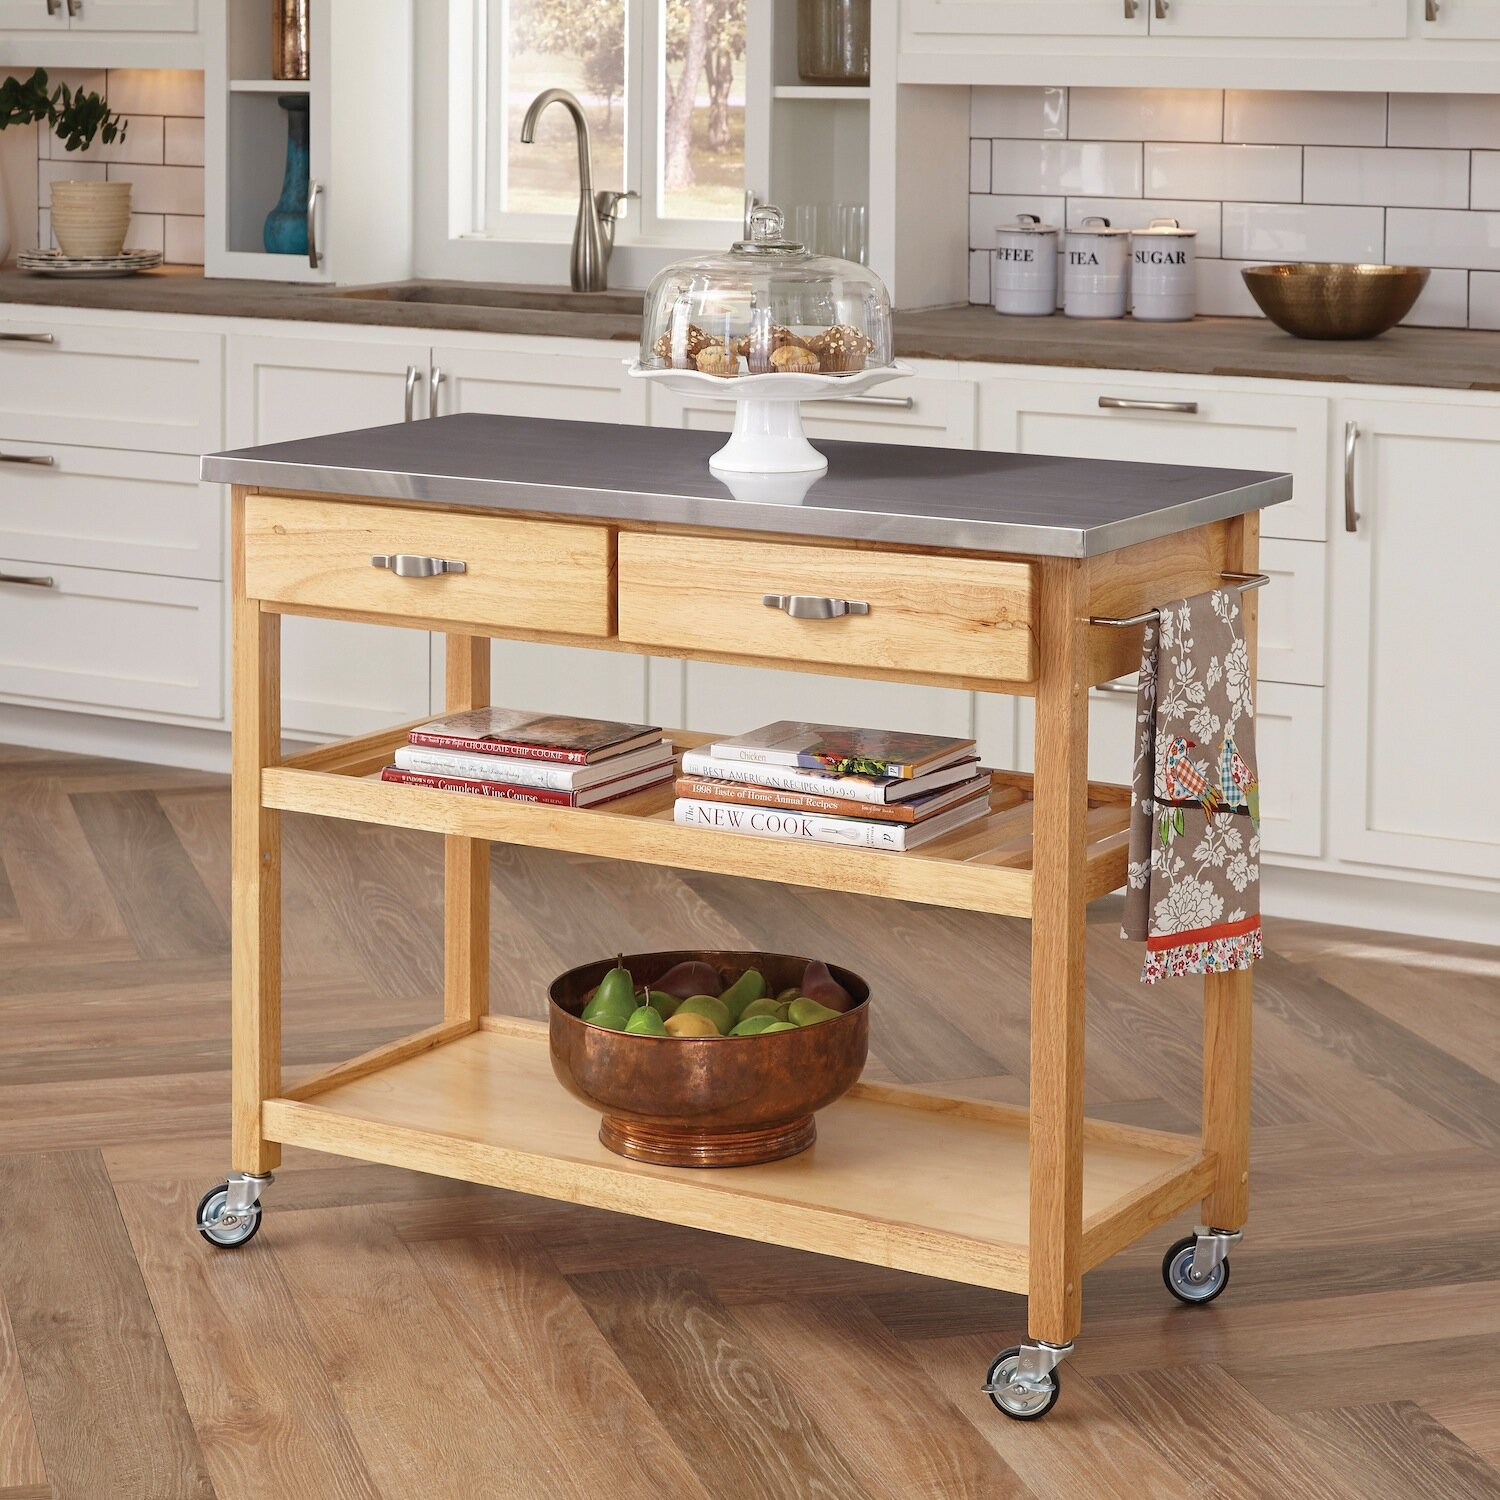 9 Standout Kitchen Islands: Home Styles Kitchen Island With Stainless Steel Top